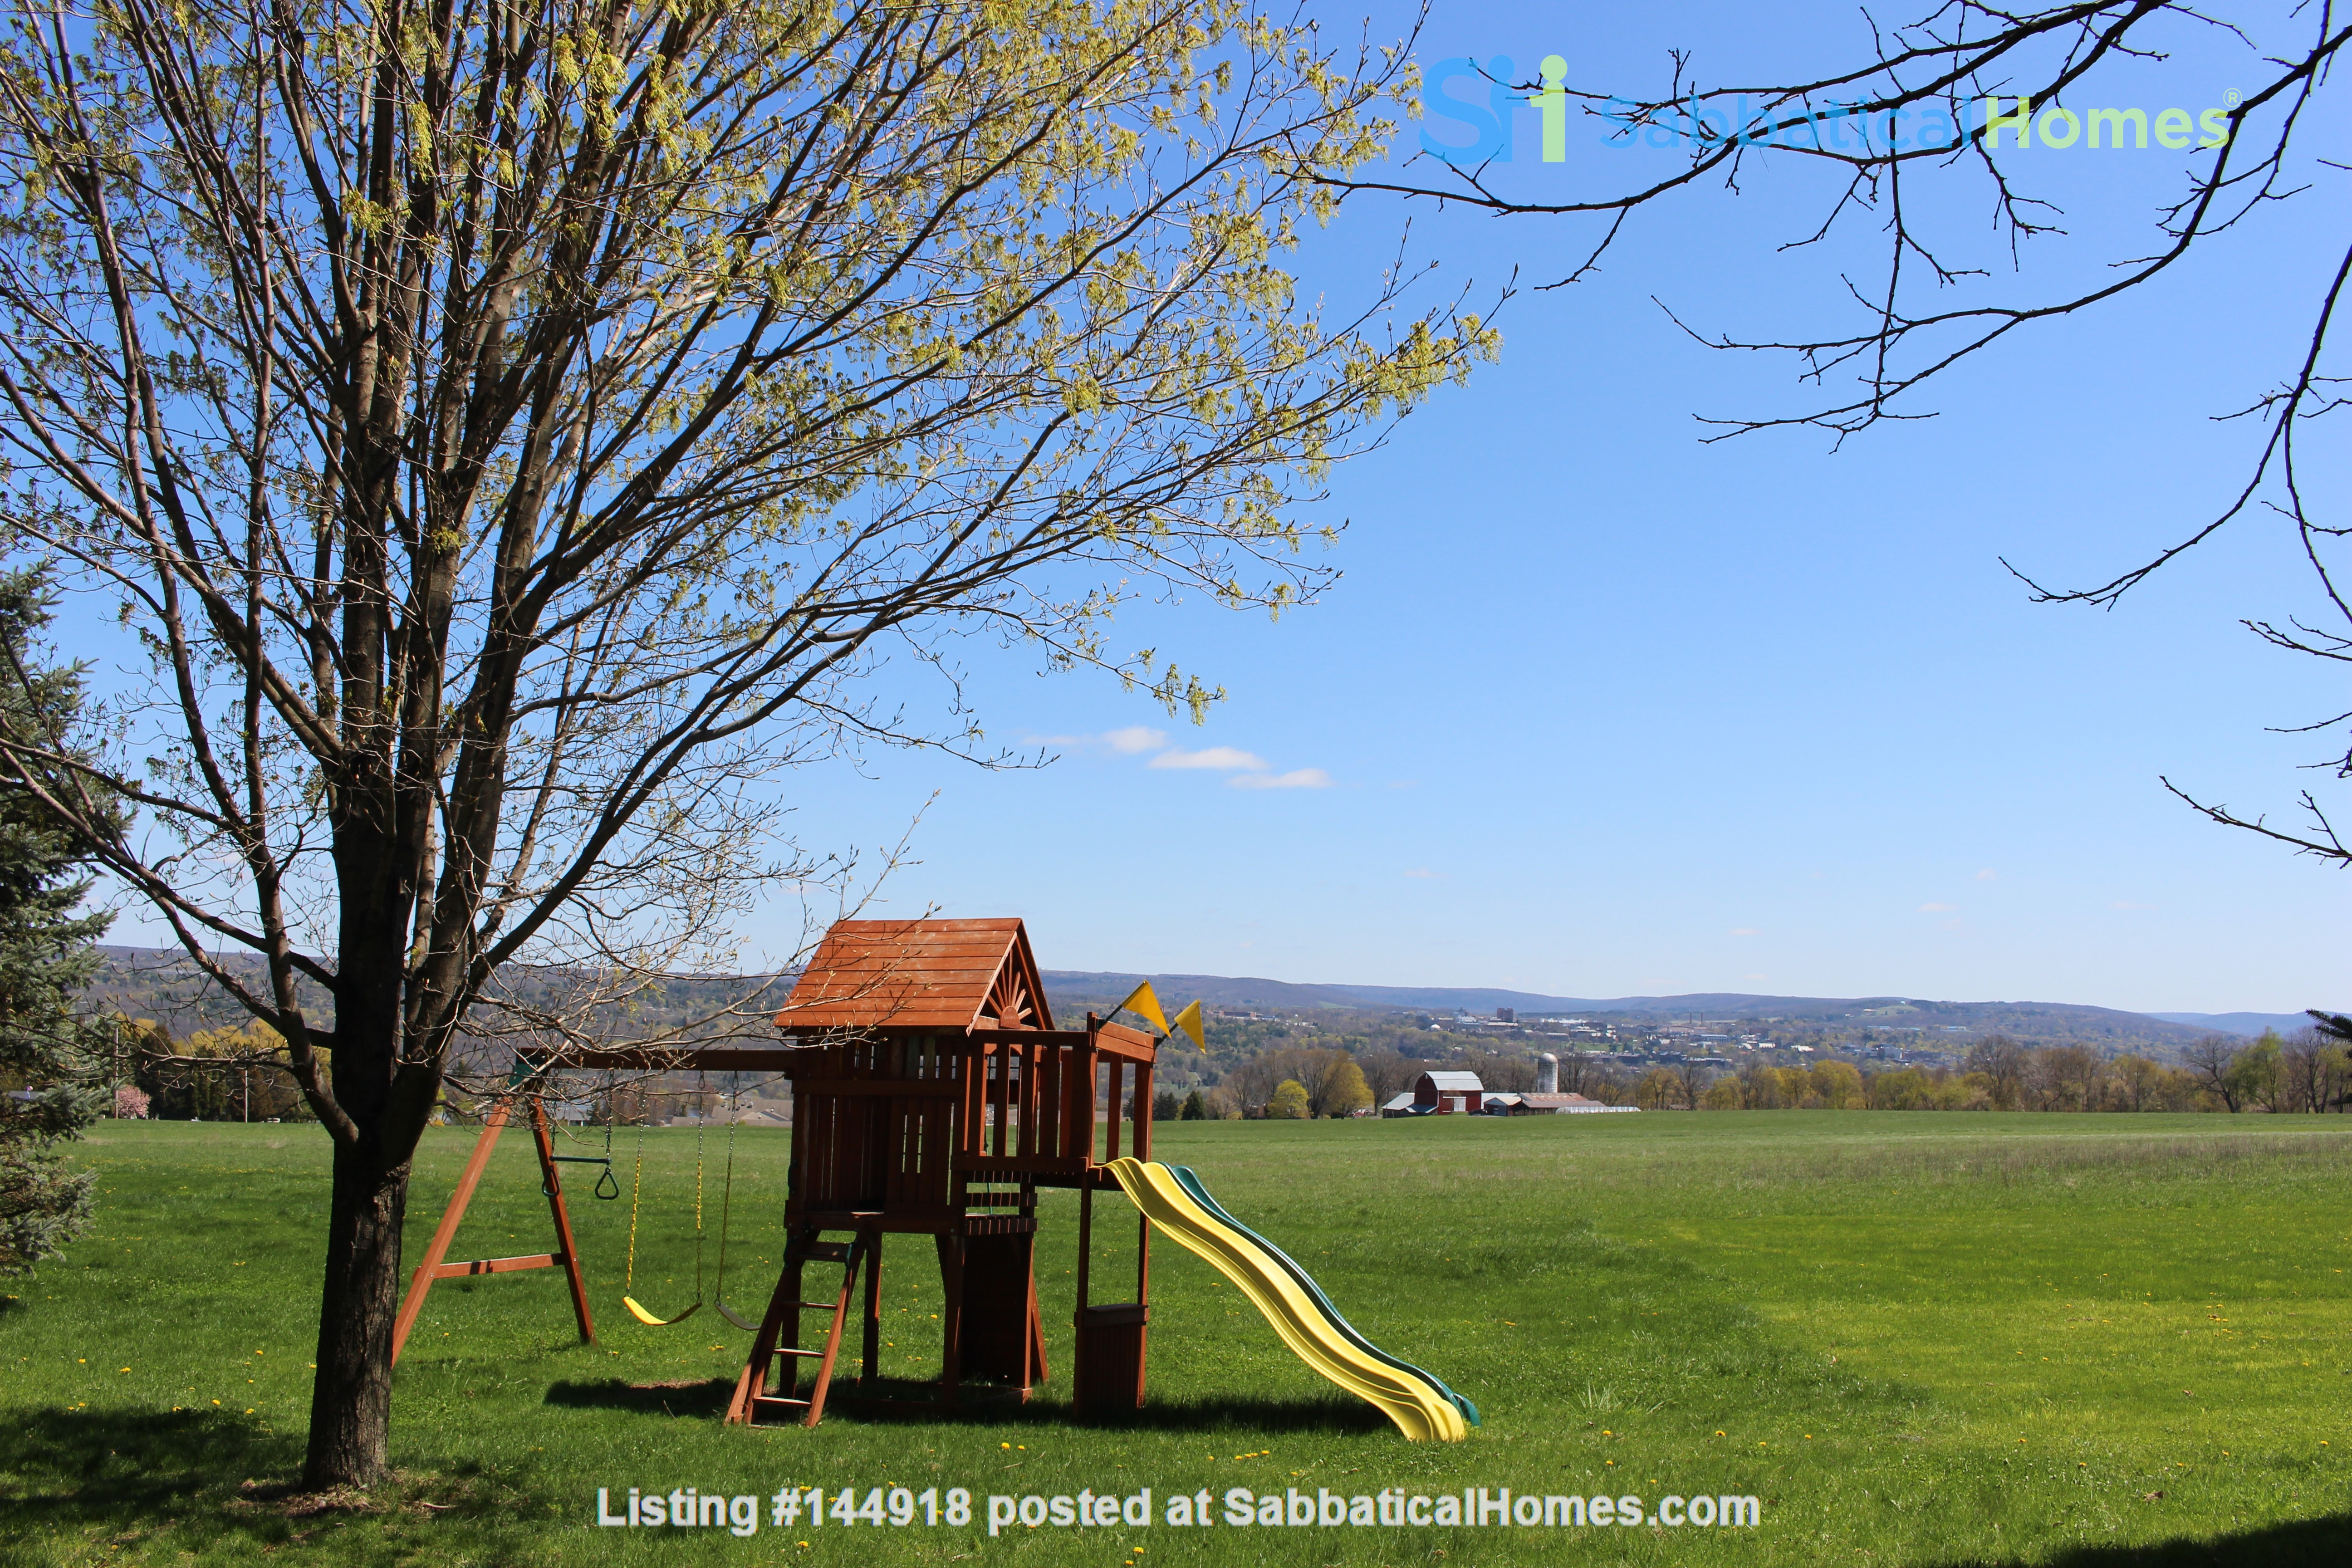 Beautiful FURNISHED large home (5 BDR, 4 BATH)  with in-home gym, playground, expansive views, spacious grounds, Close to both Cayuga Med and Cornell University Home Rental in Ithaca, New York, United States 3